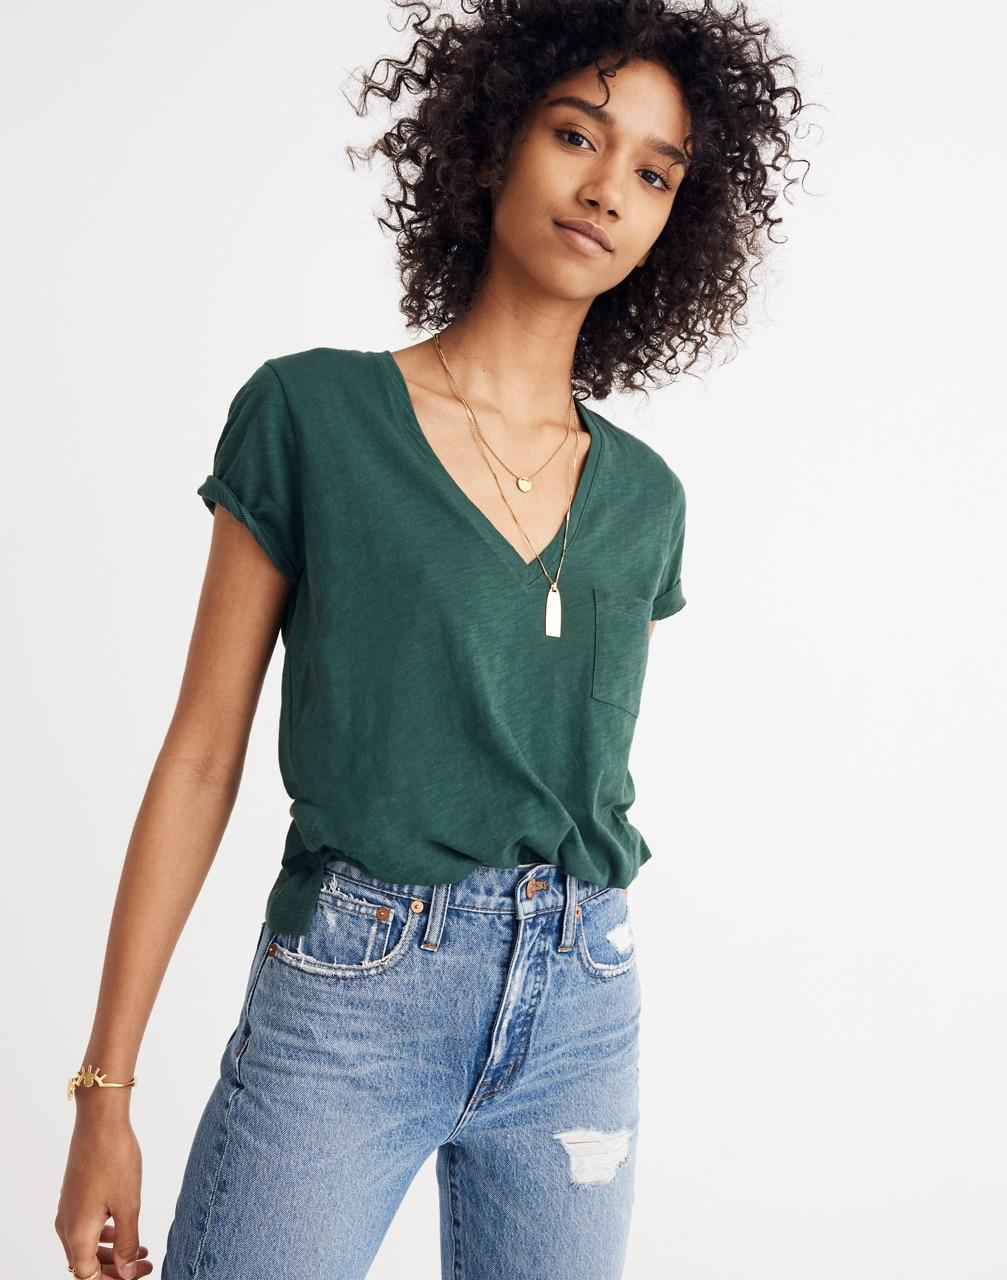 f271d9d47aa4cc Lyst - Madewell Whisper Cotton V-neck Pocket T-shirt in Green